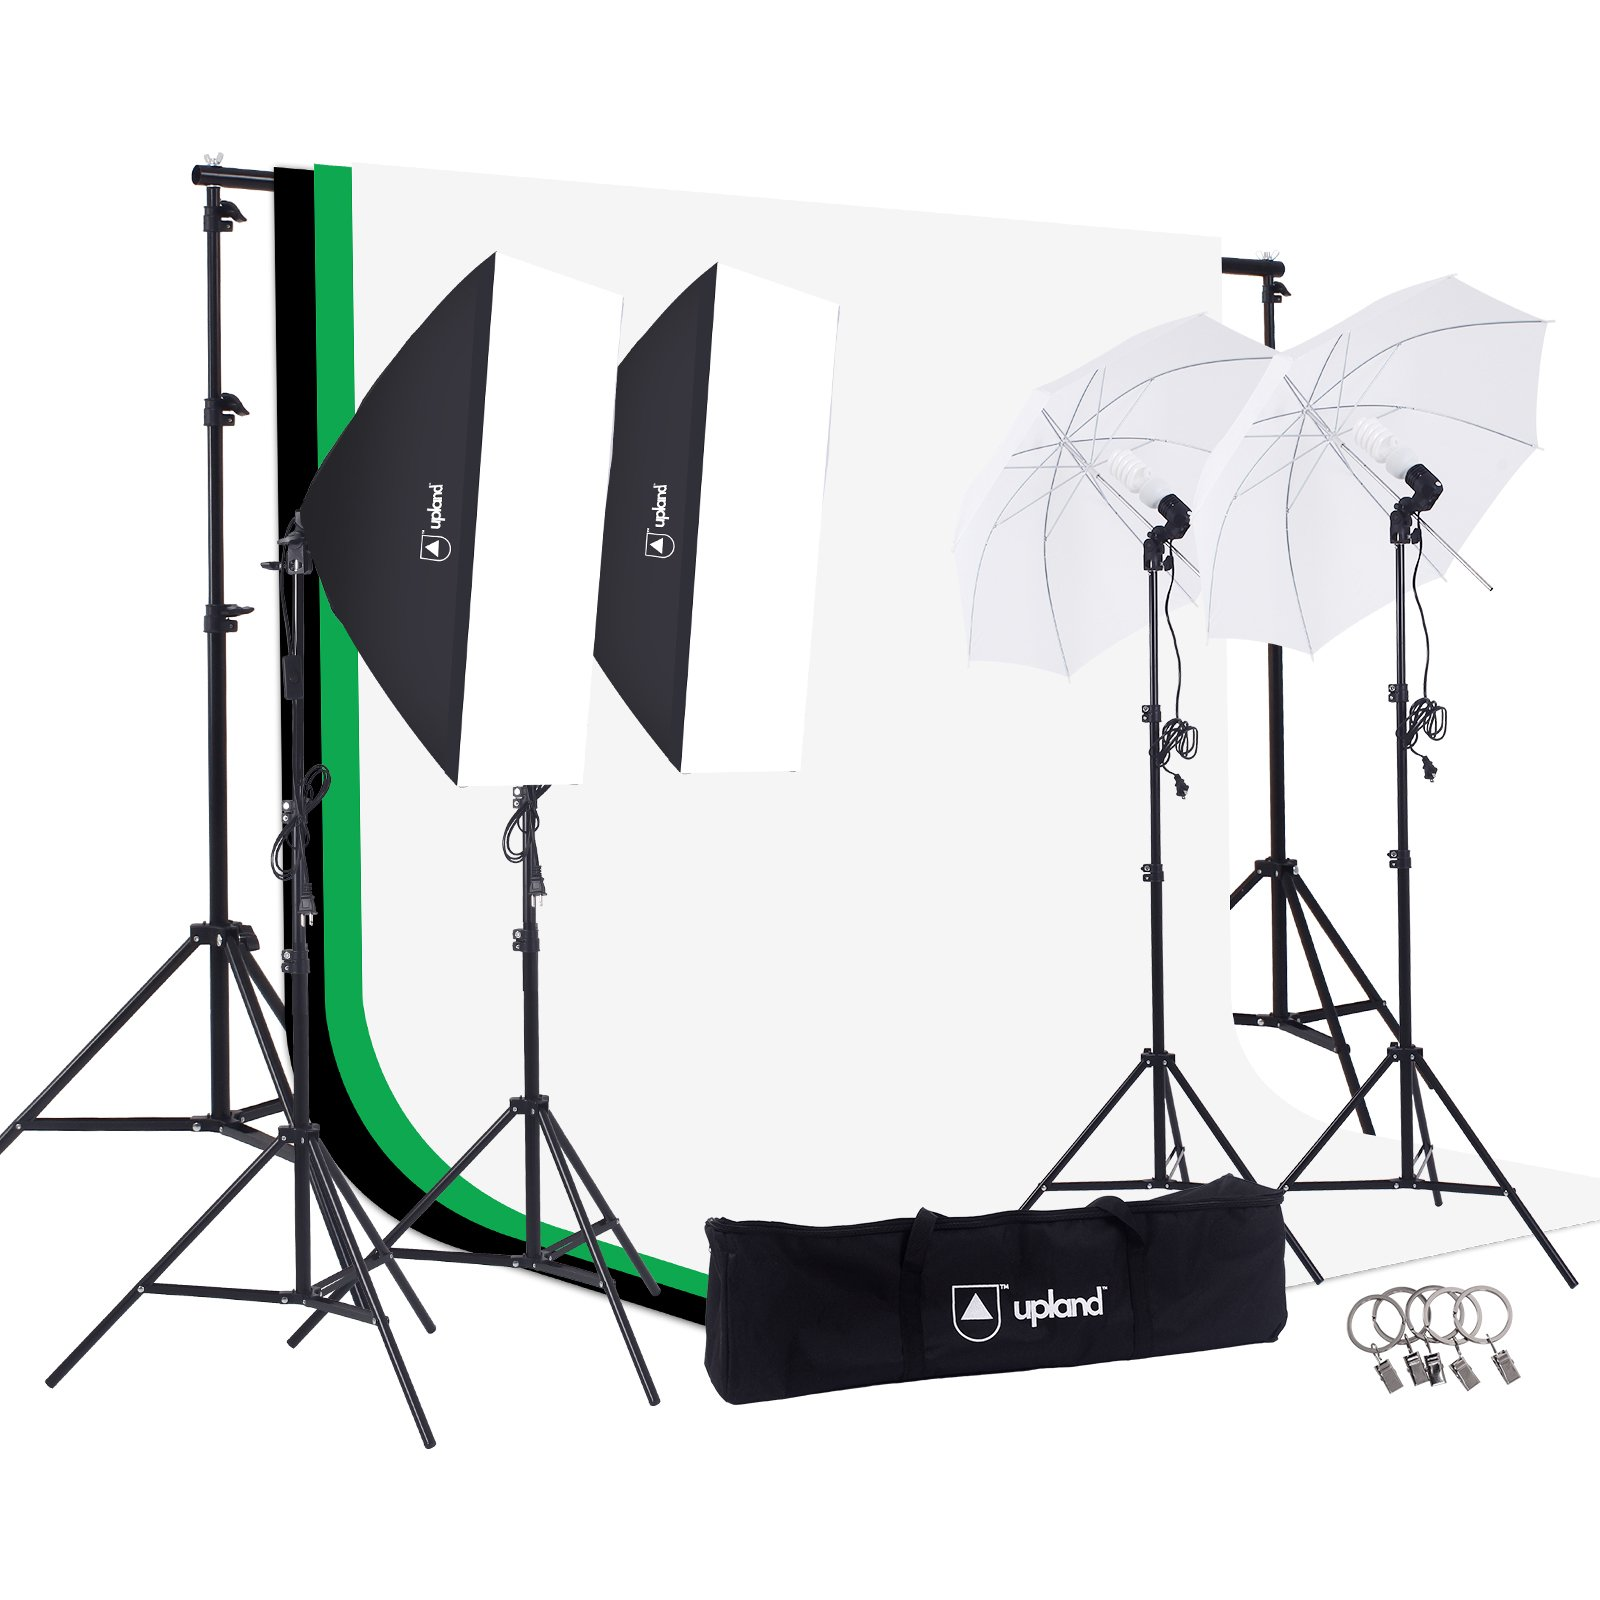 Upland Photography Studio Lighting Kit, 800W 5500K Umbrella Softbox Continuous Light Kit for Product, Portrait and Video Shoot by Upland